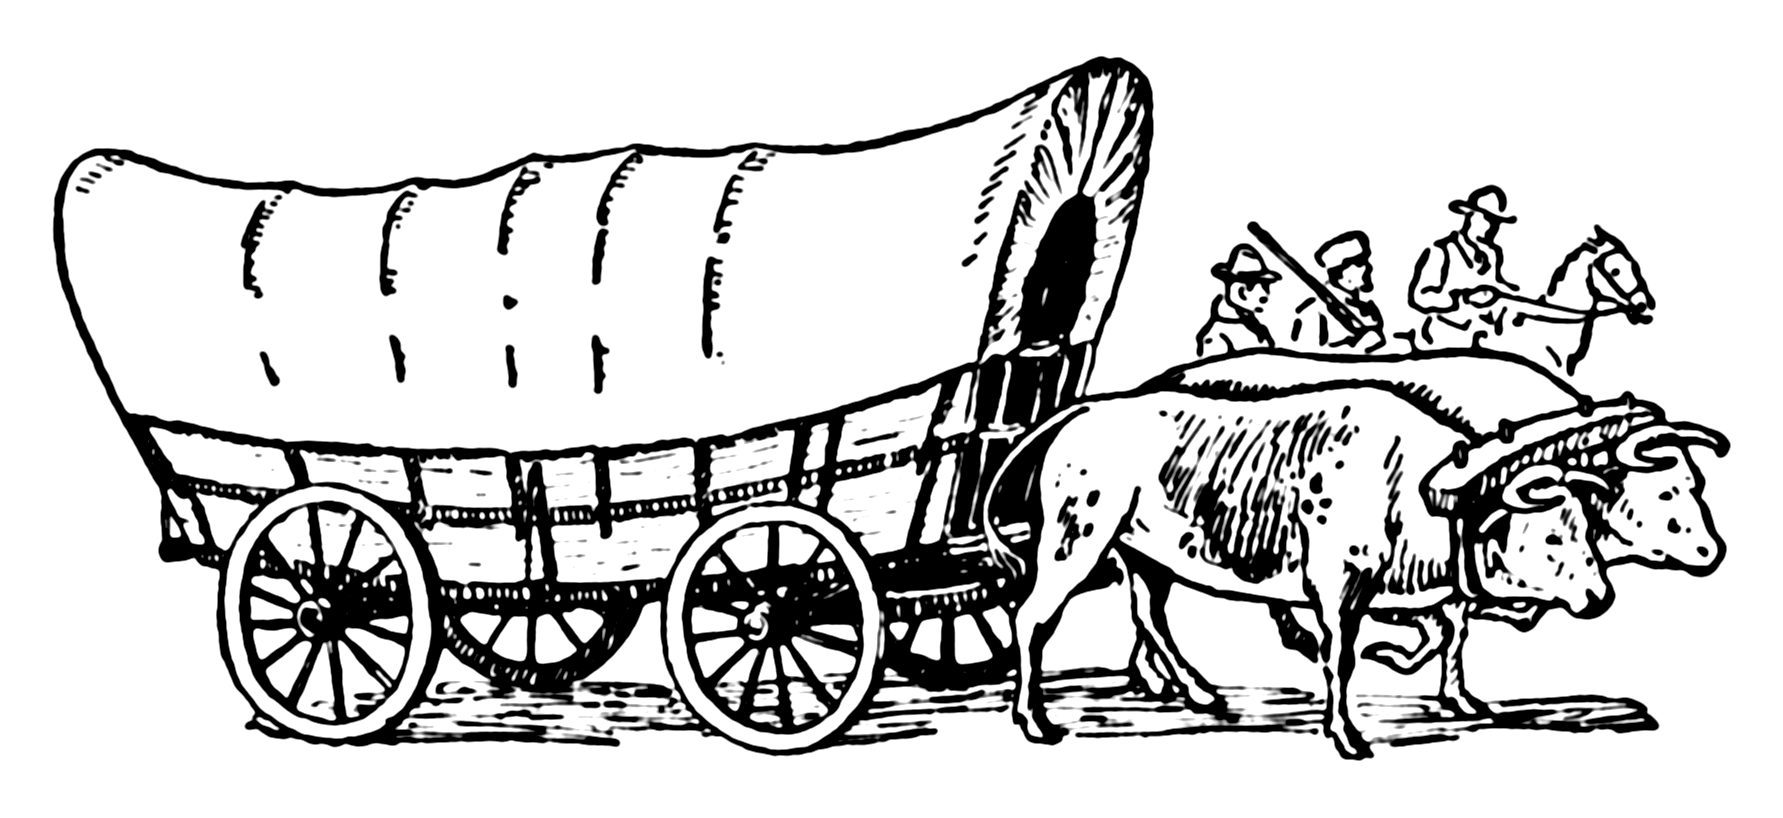 Covered wagon train clipart.